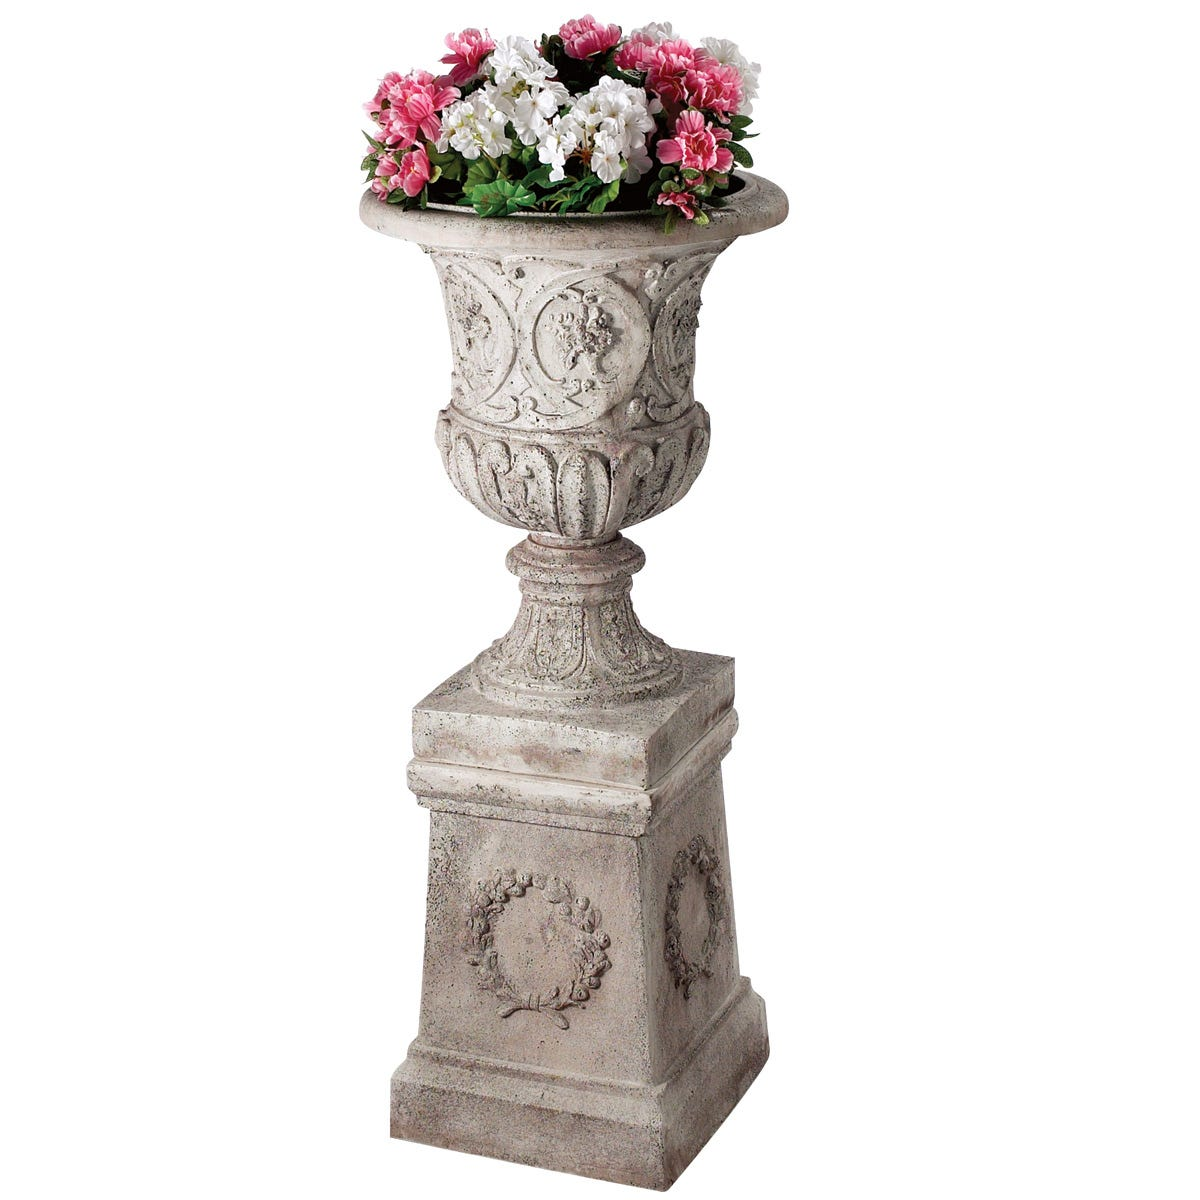 Urn and Pedestal Combo from Sportys Preferred Living